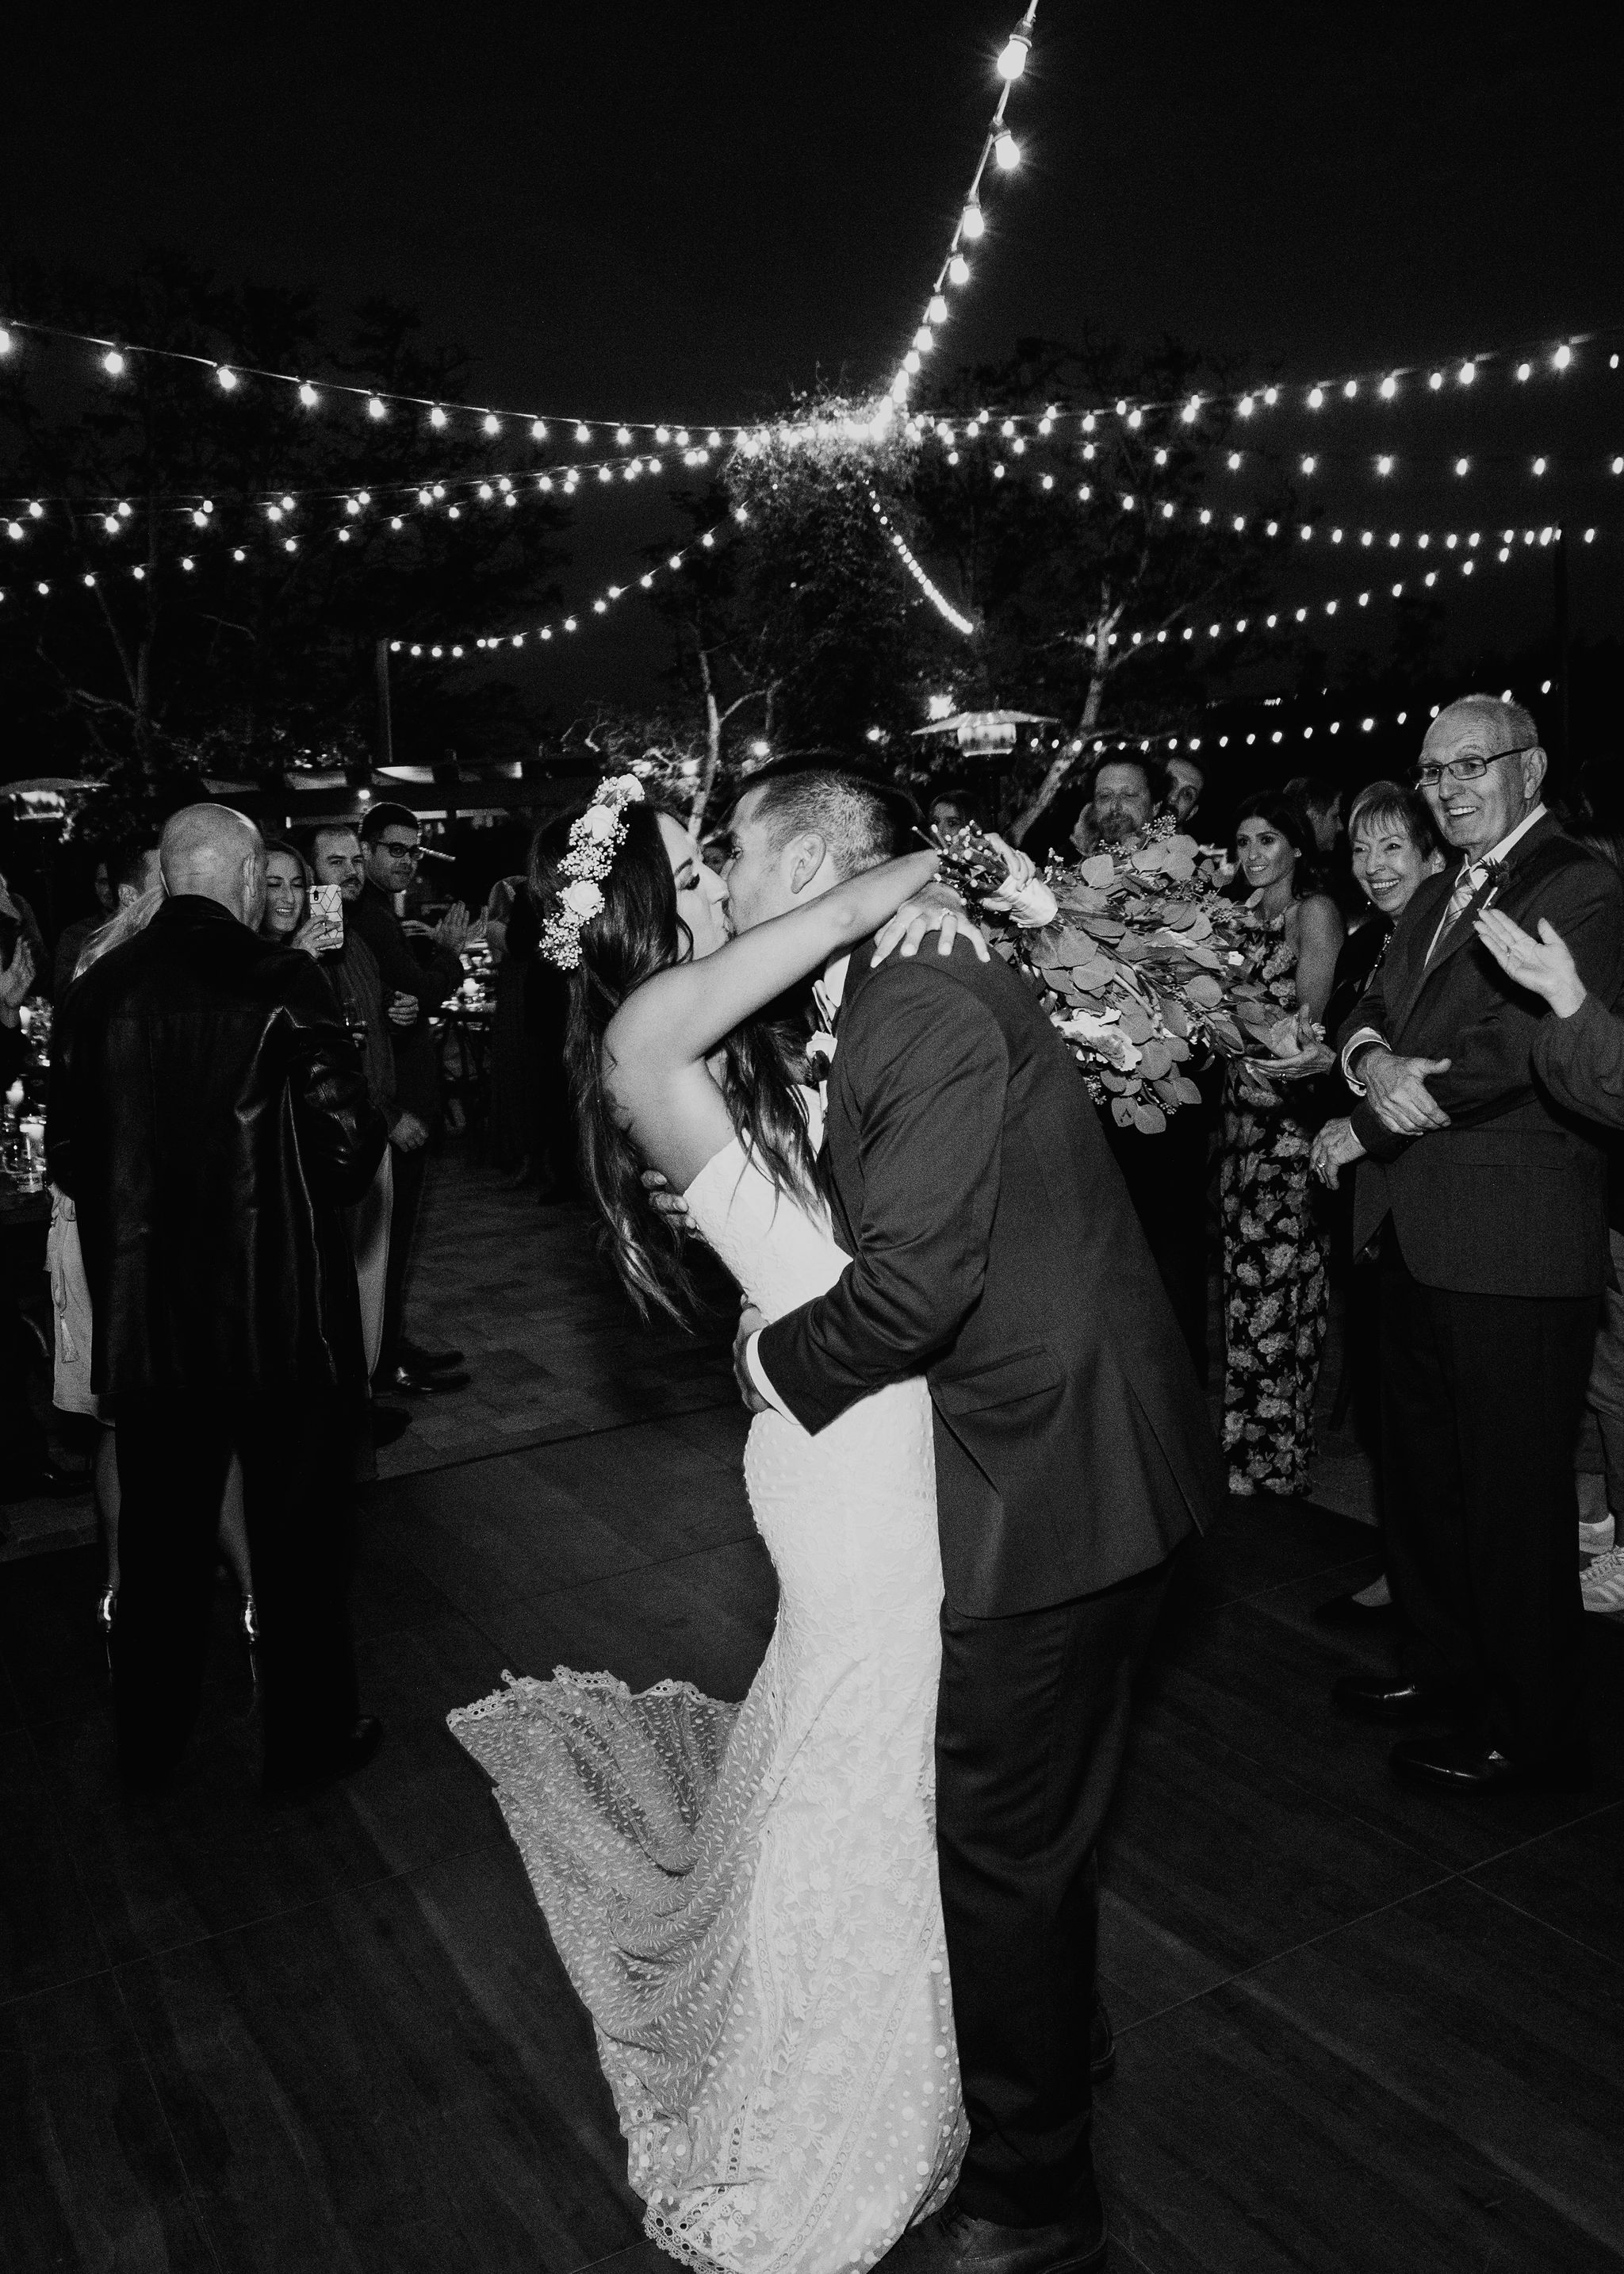 WalnutGroveWedding_Geoff&LyndsiPhotography_Casie&Matt_Reception31.jpg